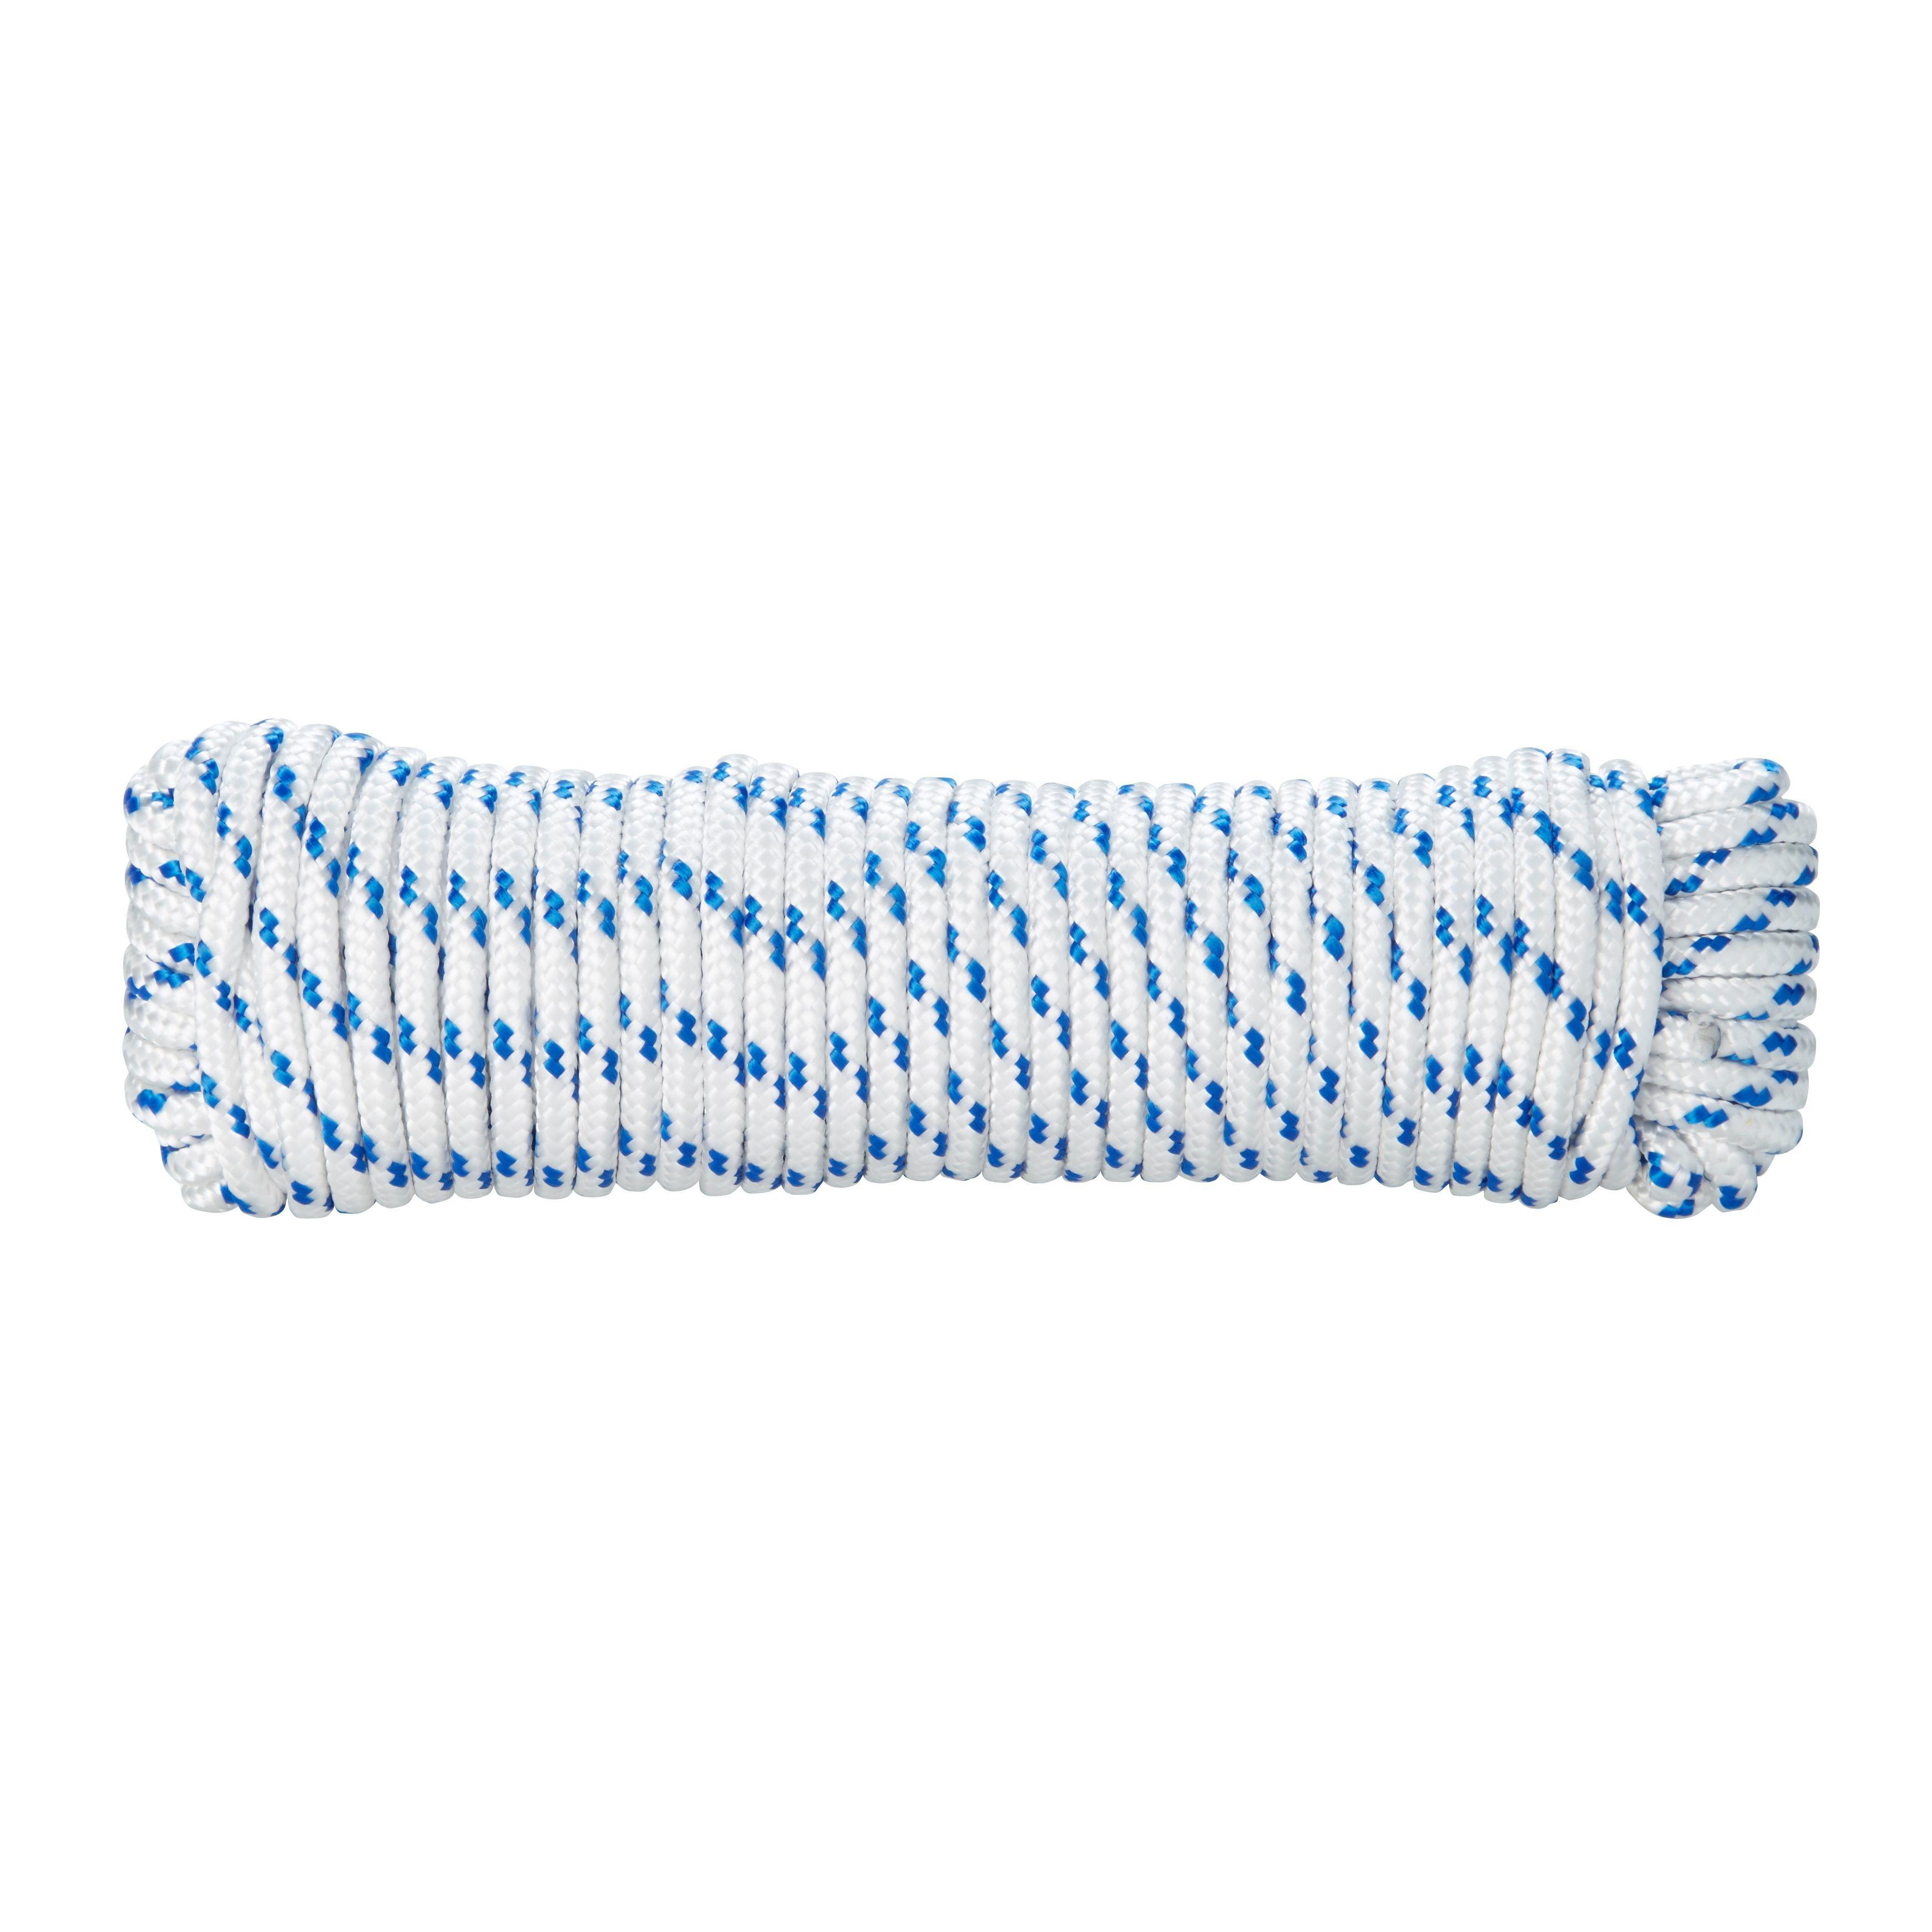 Diall Polypropylene Braided Rope 6mm 10m Departments